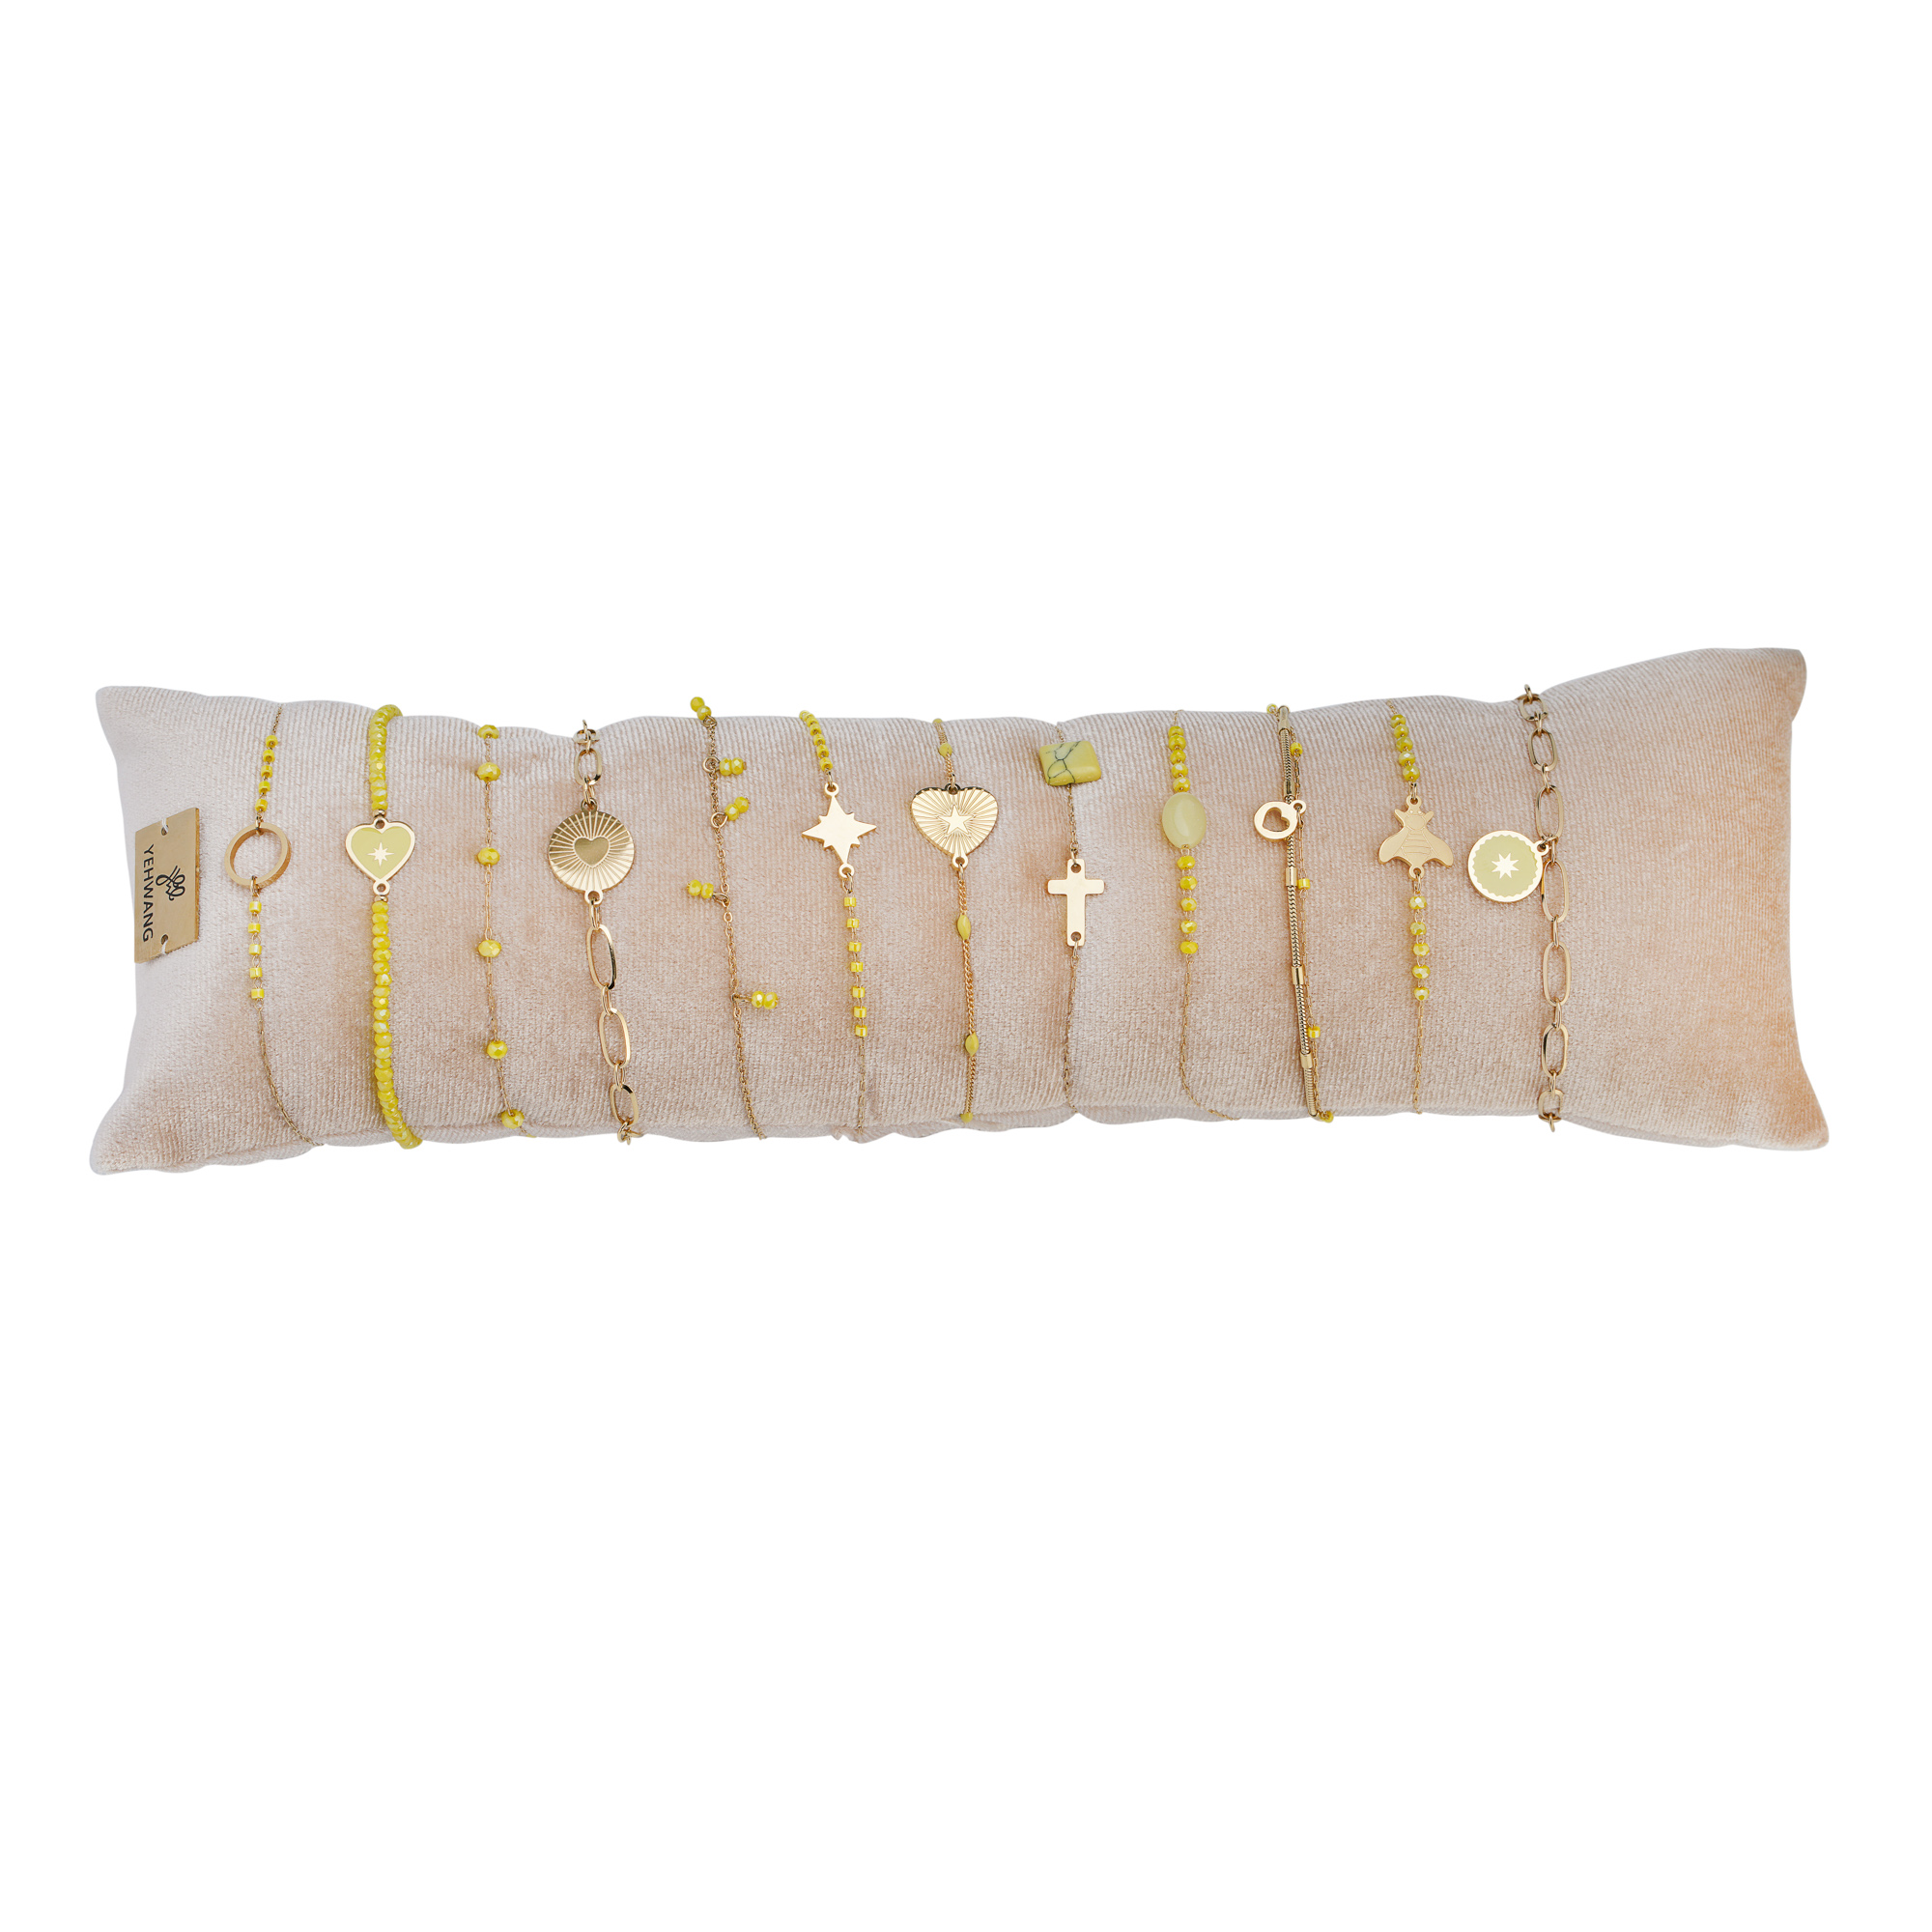 Armband Display Spring Musthaves